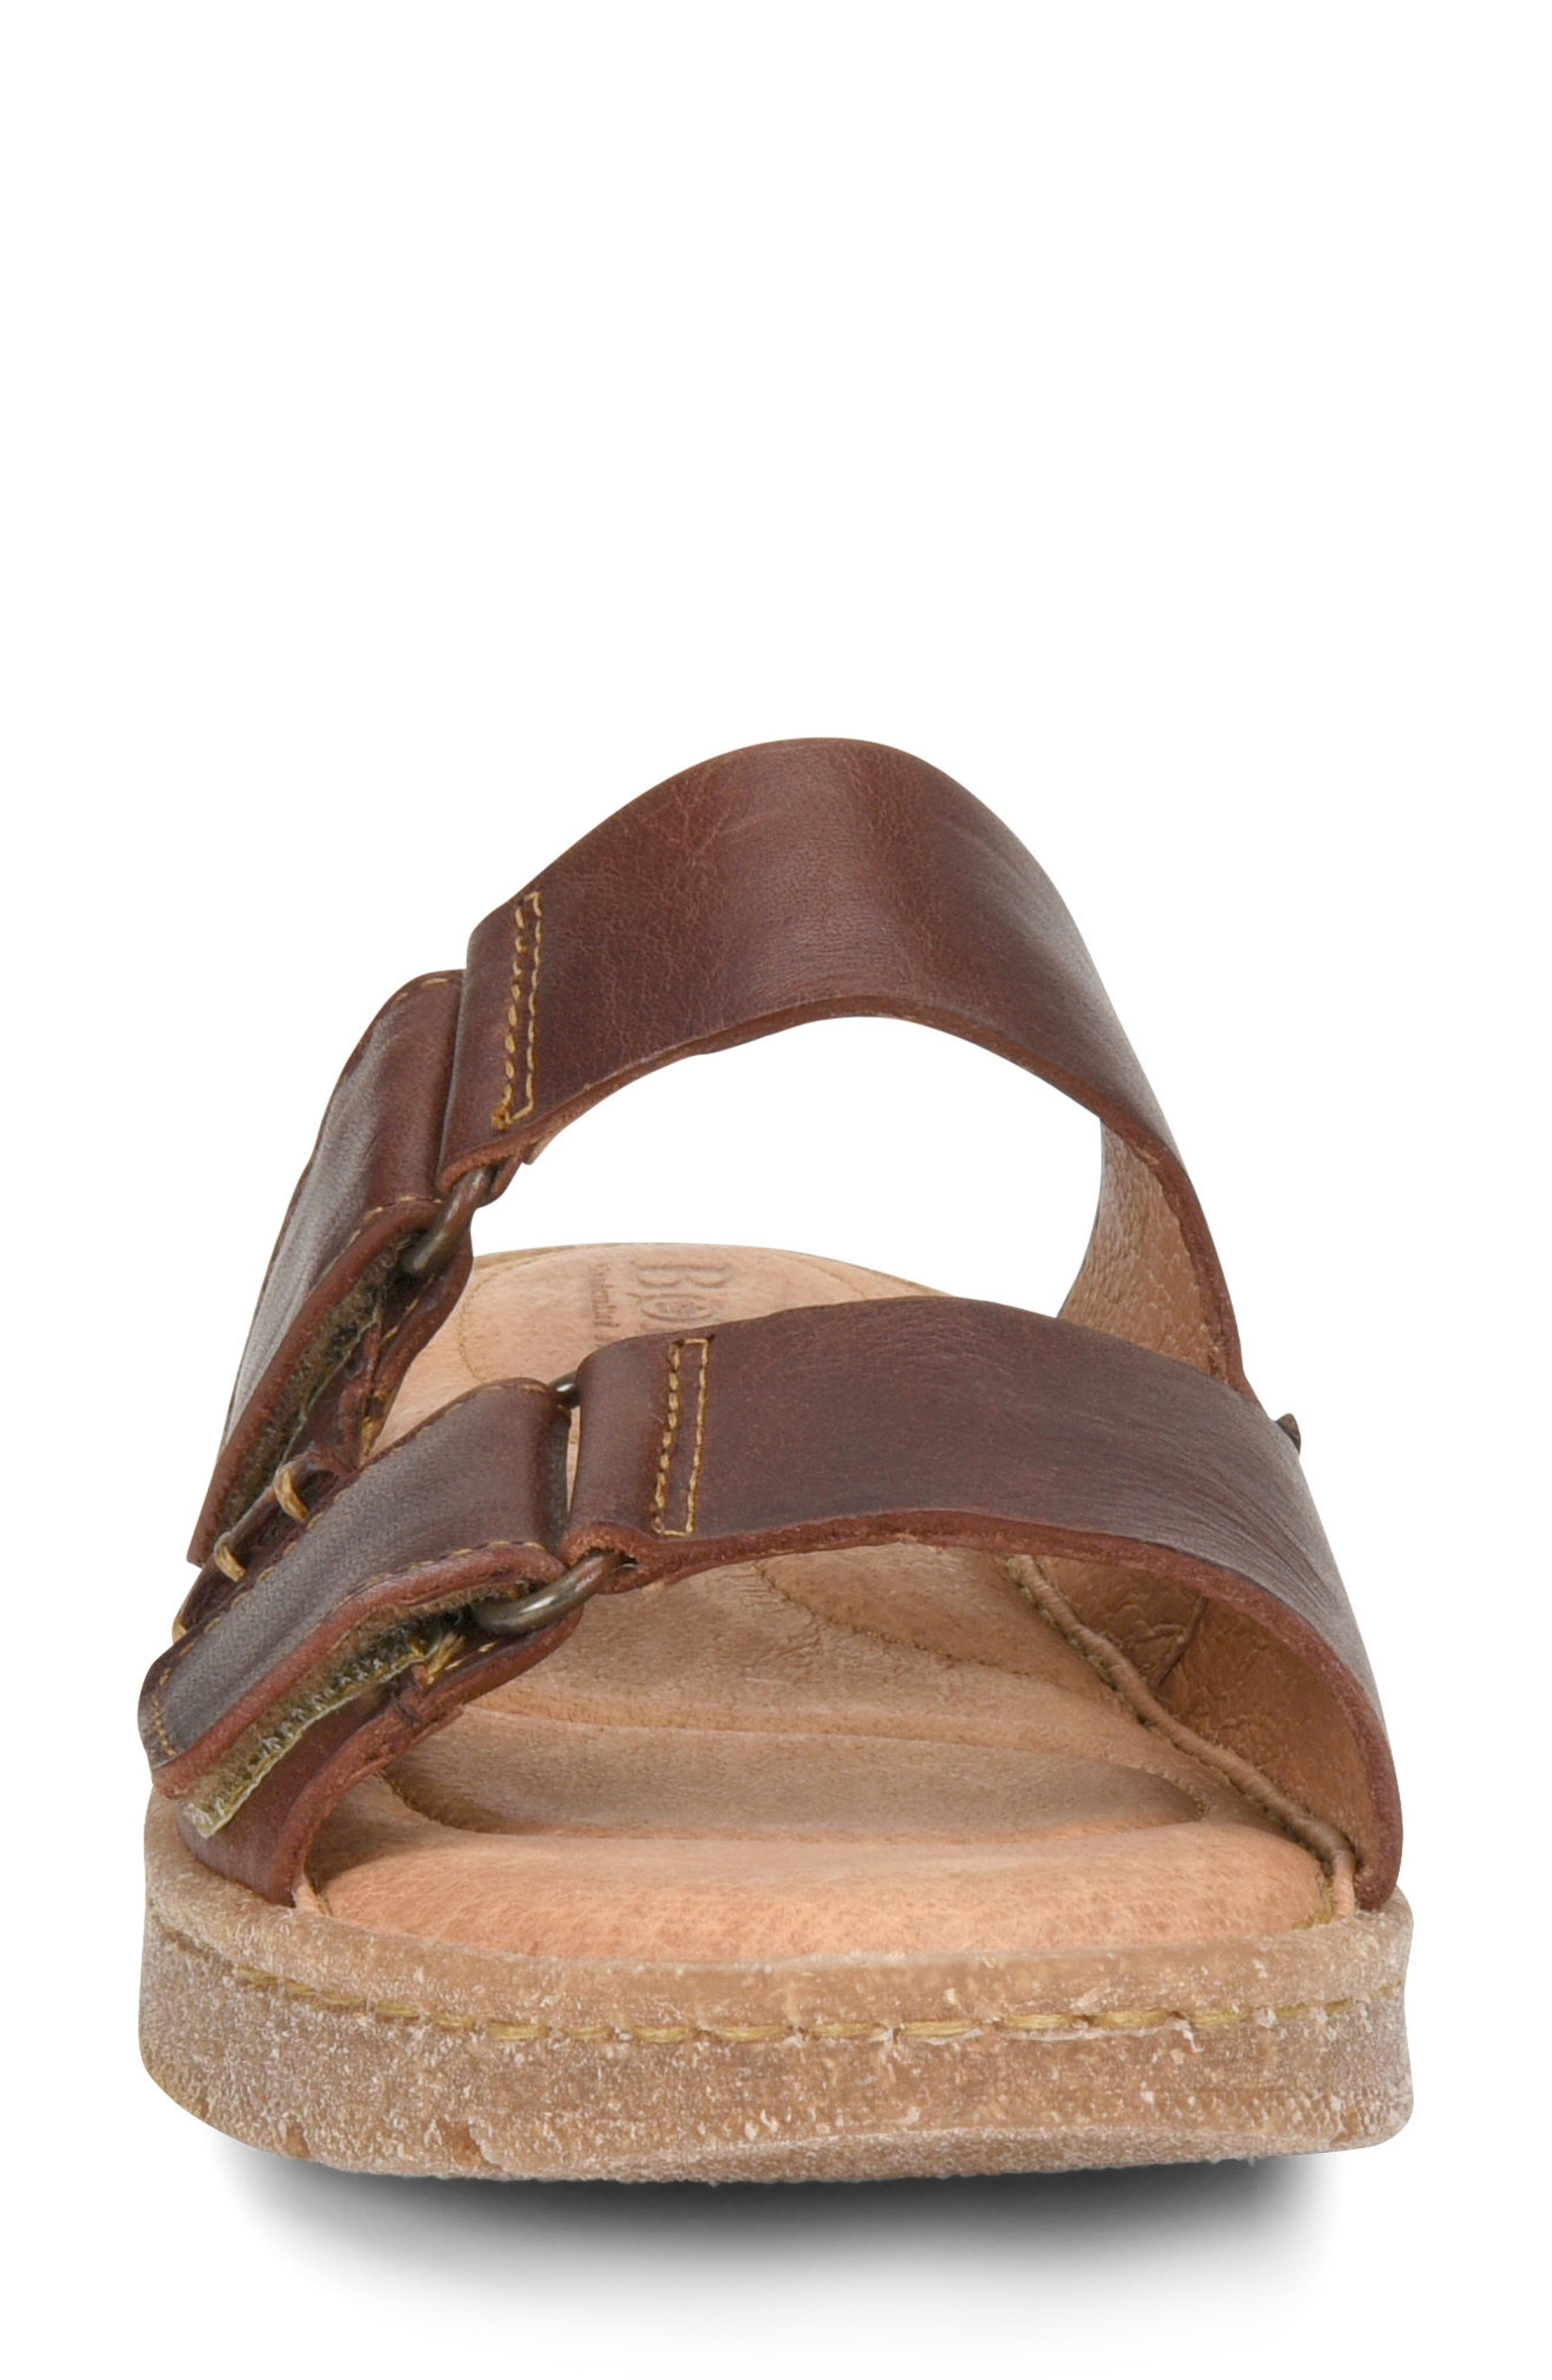 Dominica Sandal,                             Alternate thumbnail 4, color,                             Rust Leather